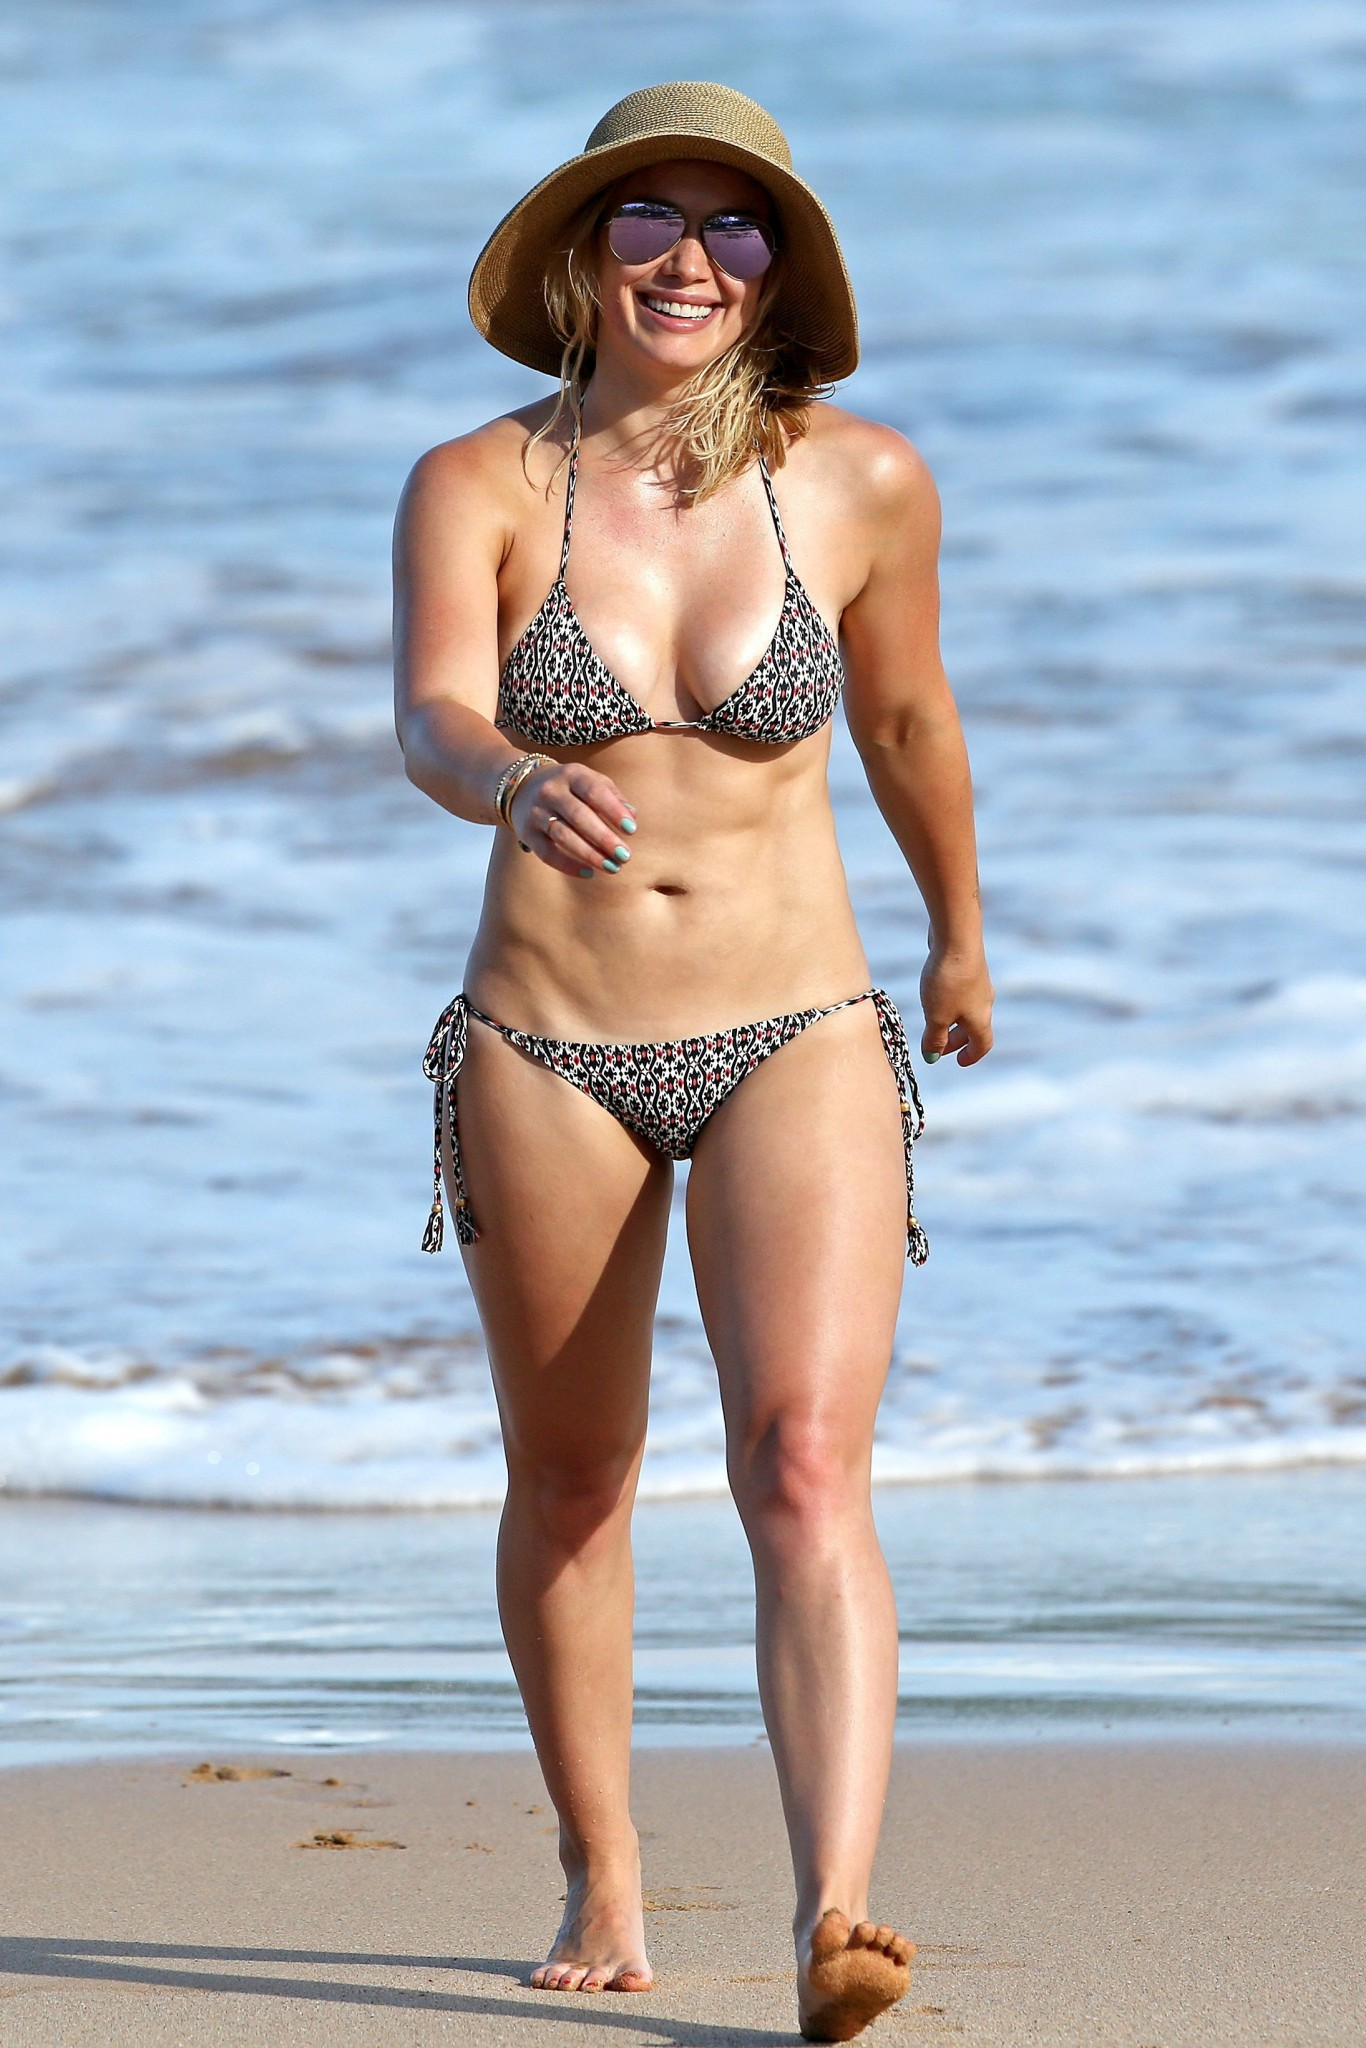 hilary-duff-wearing-a-bikini-in-hawaii-17